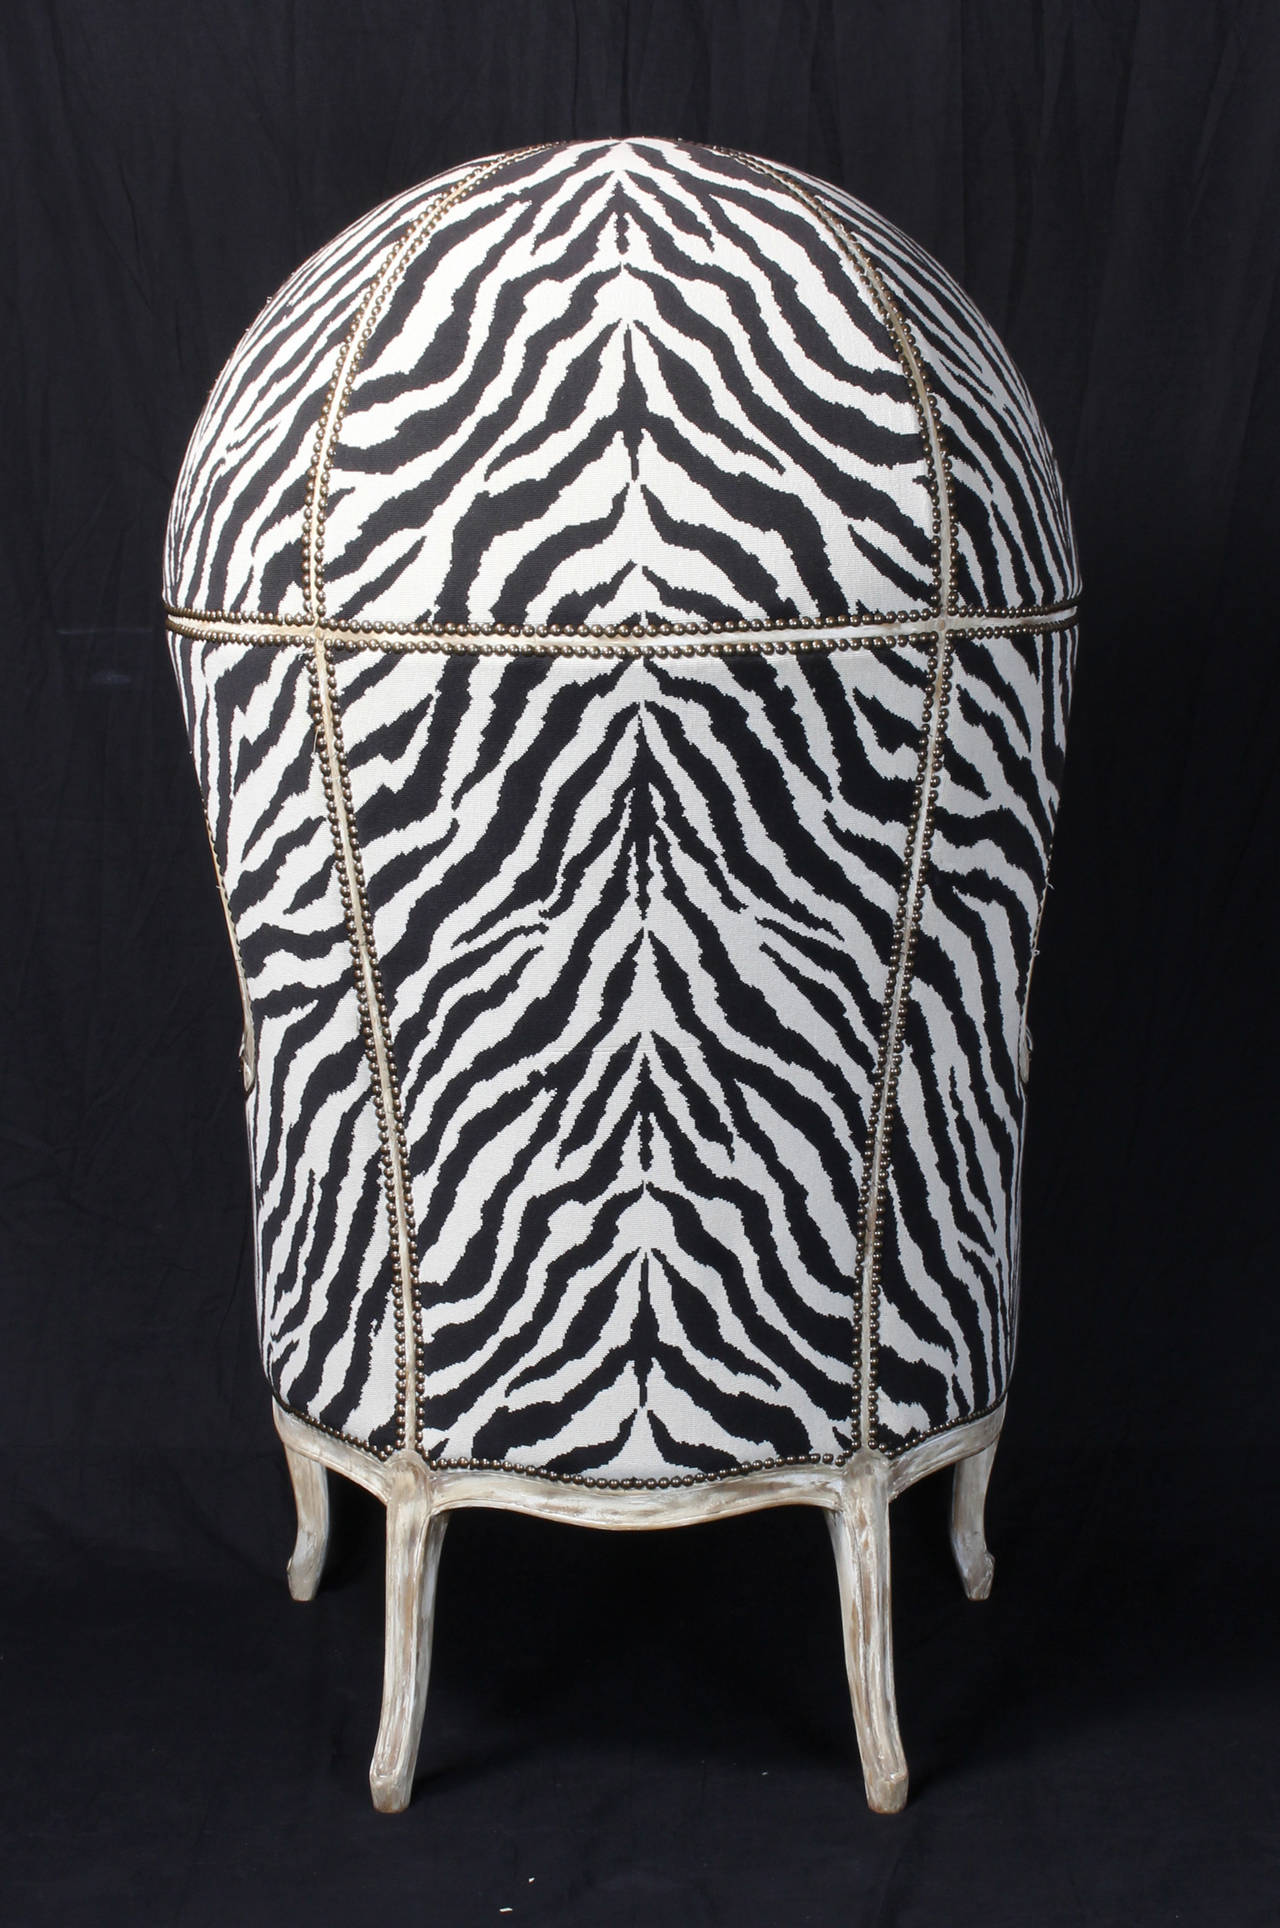 zebra print chairs for sale wedding chair cover hire lincolnshire porter 39s in tapestry at 1stdibs